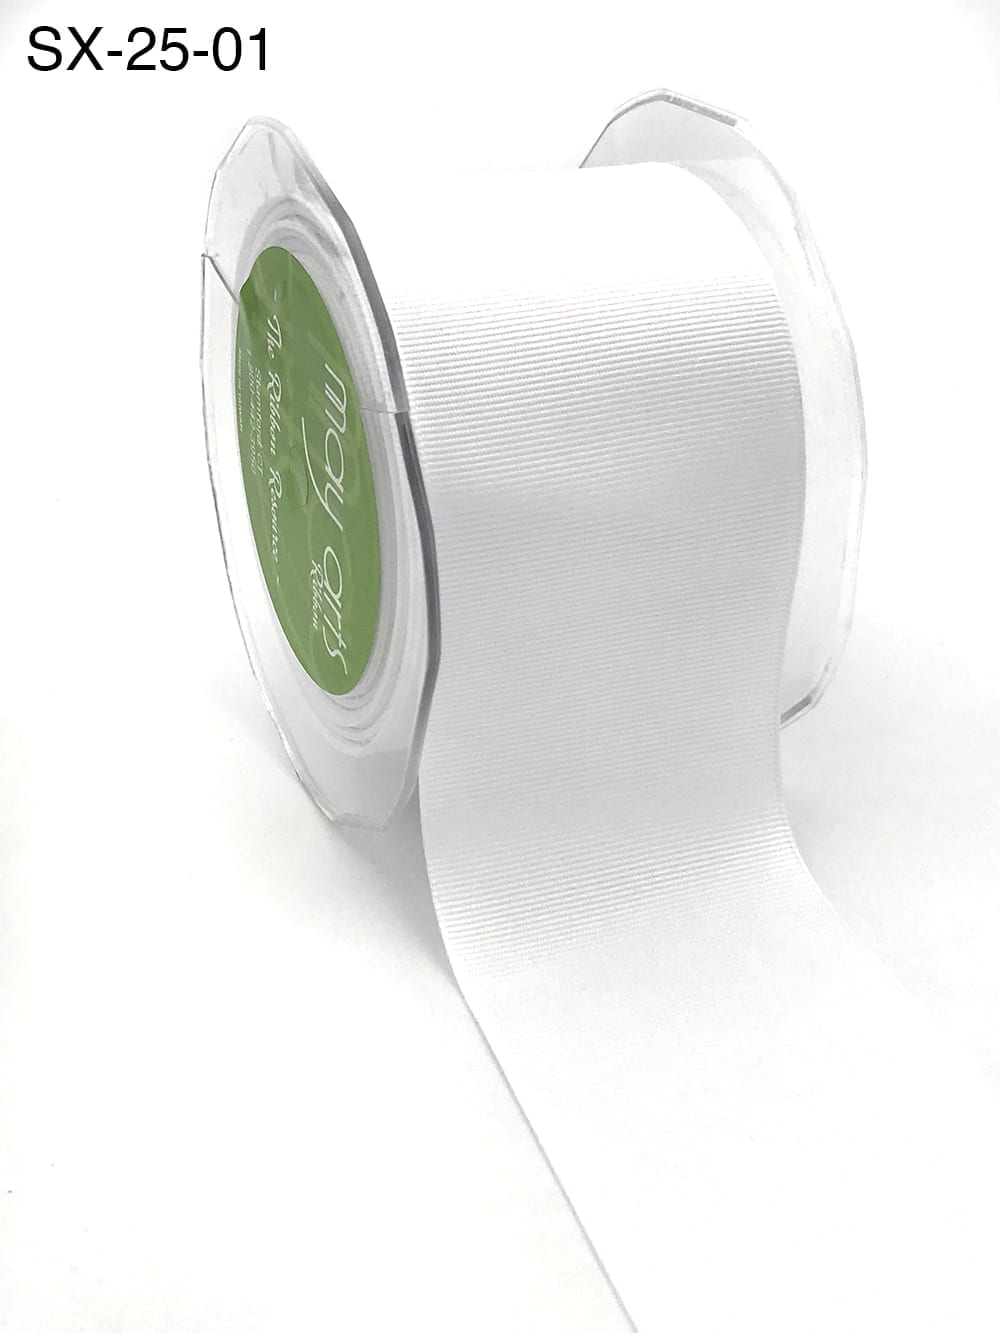 2.5 Inch Heavy-Weight (higher thread count) Classic Grosgrain Ribbon with Woven Edge - SX-25-01 white